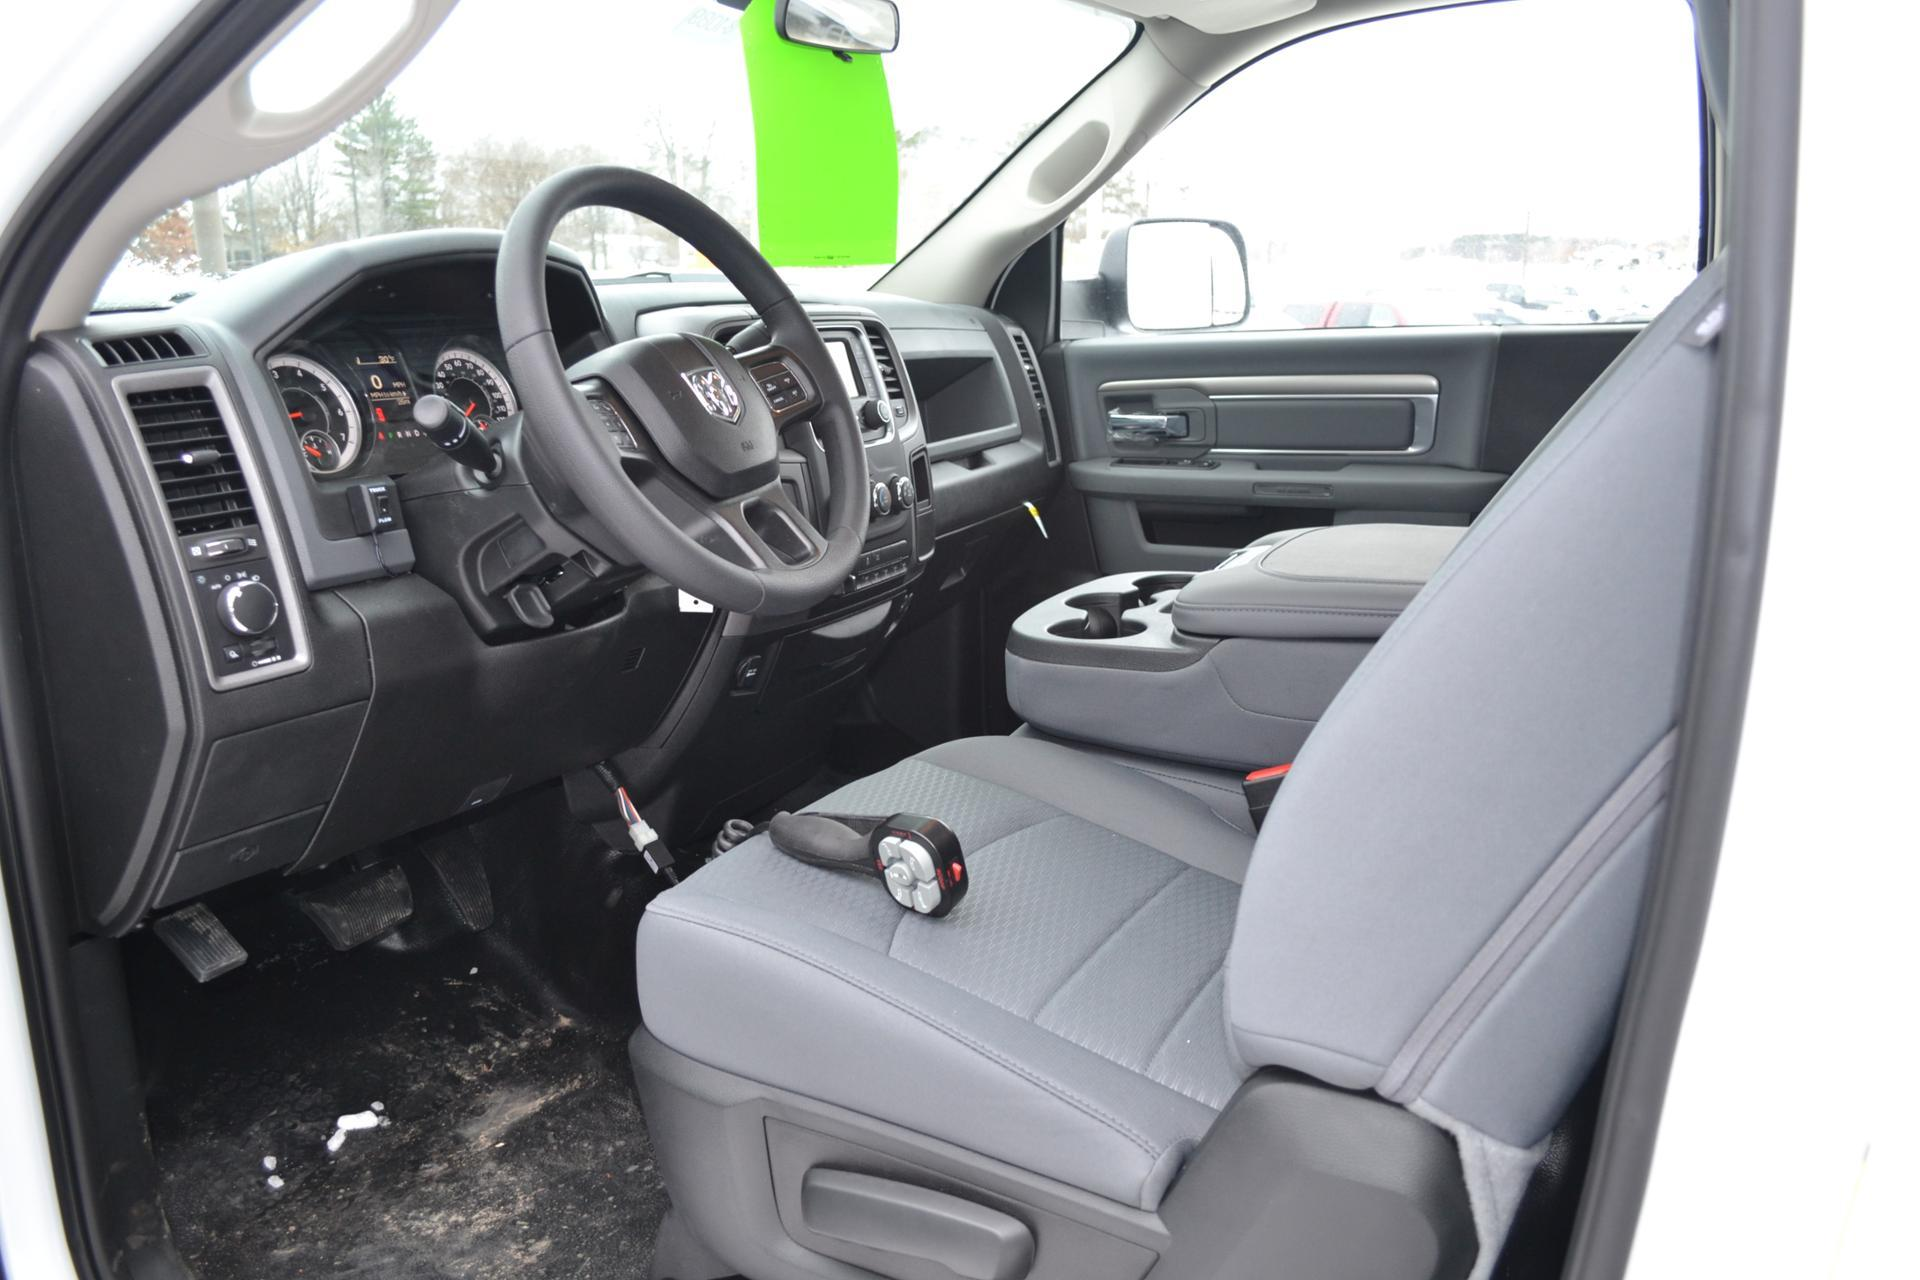 2018 Ram 3500 Regular Cab 4x4,  Pickup #18-1089 - photo 14